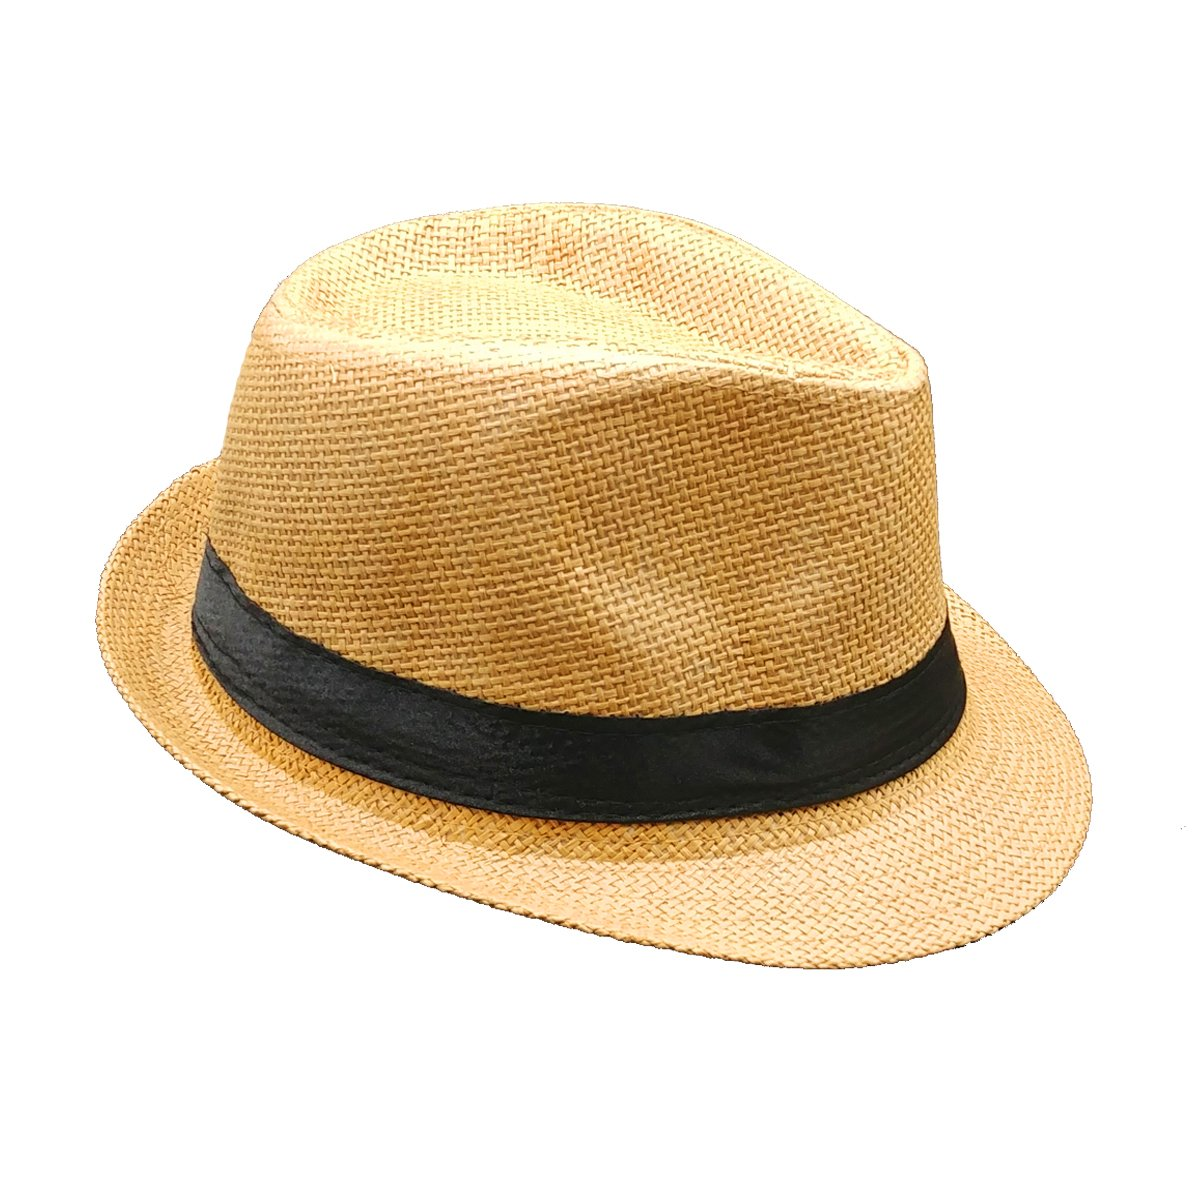 List A Banded Straw Fedora Hat for Kids Trilby Gangster Panama Classic Vintage Short Brim Style (Brown)